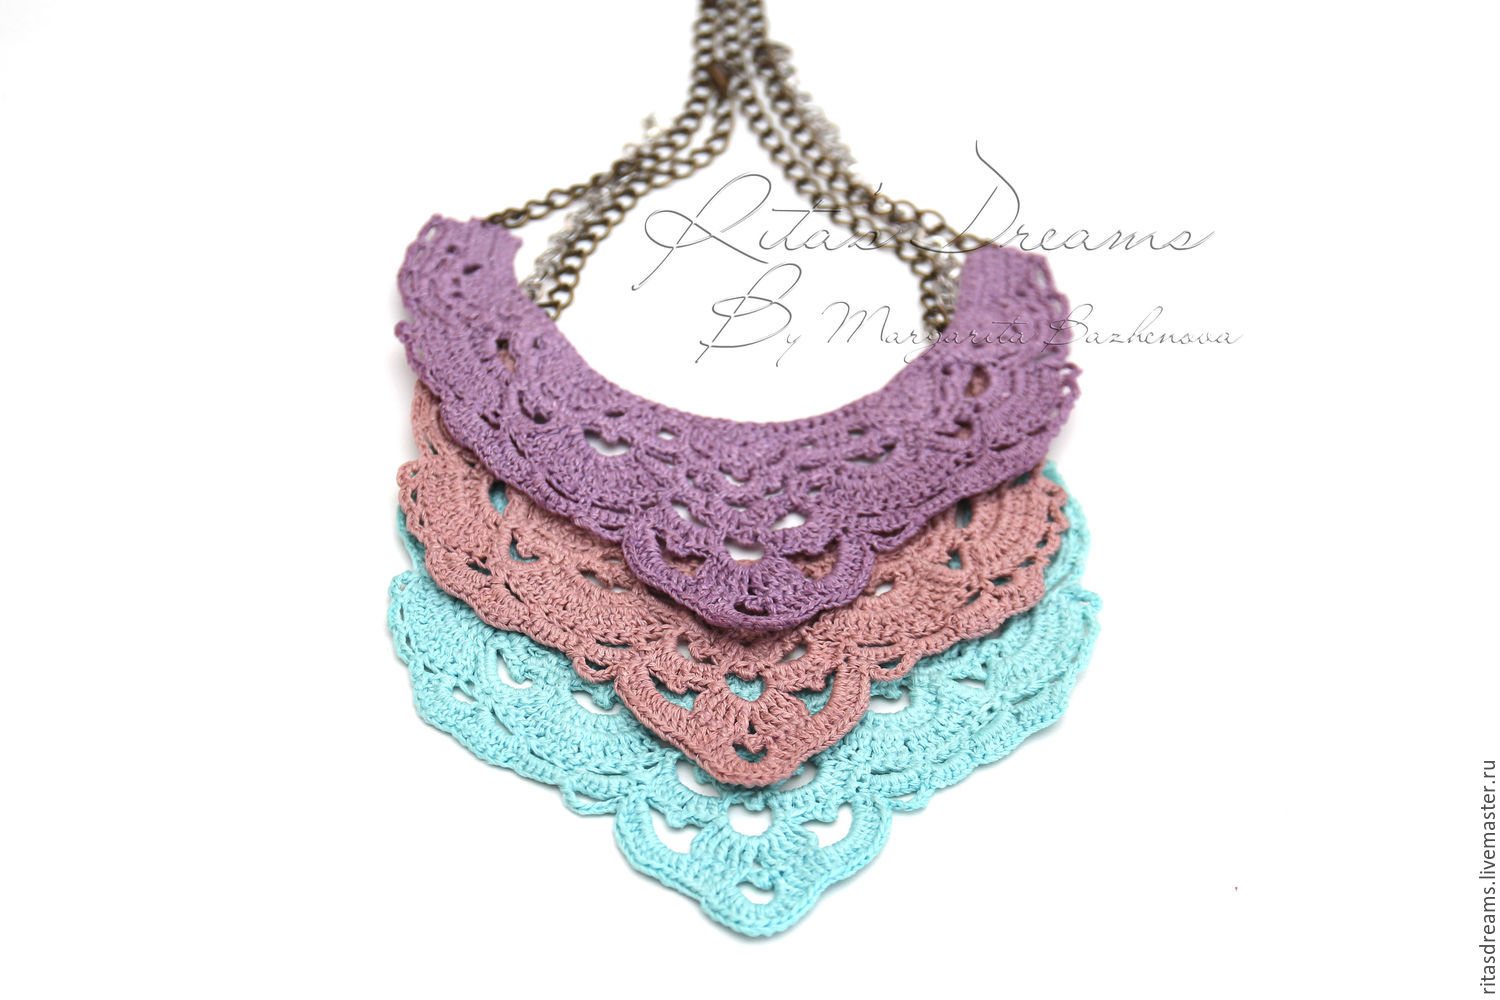 Openwork necklace made of linen crochet on a chain available in three colors: lilac, dusty pink and turquoise blue.